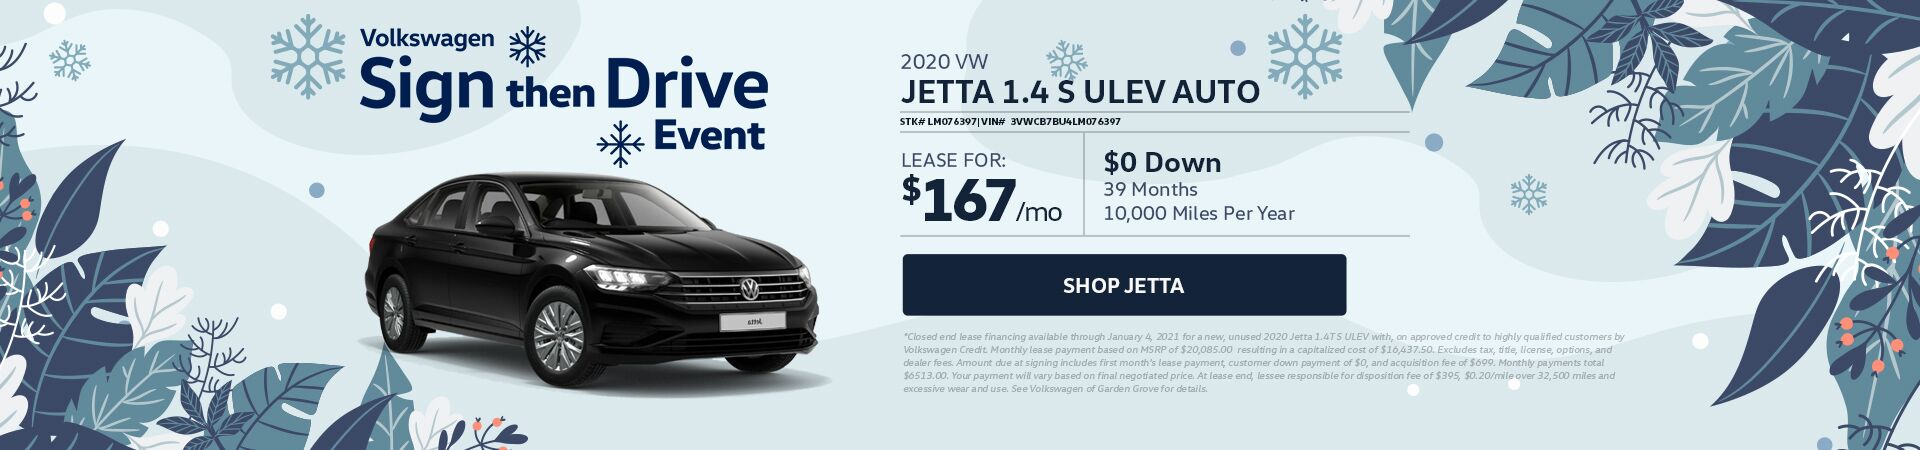 VW Jetta - updated 11.12.20